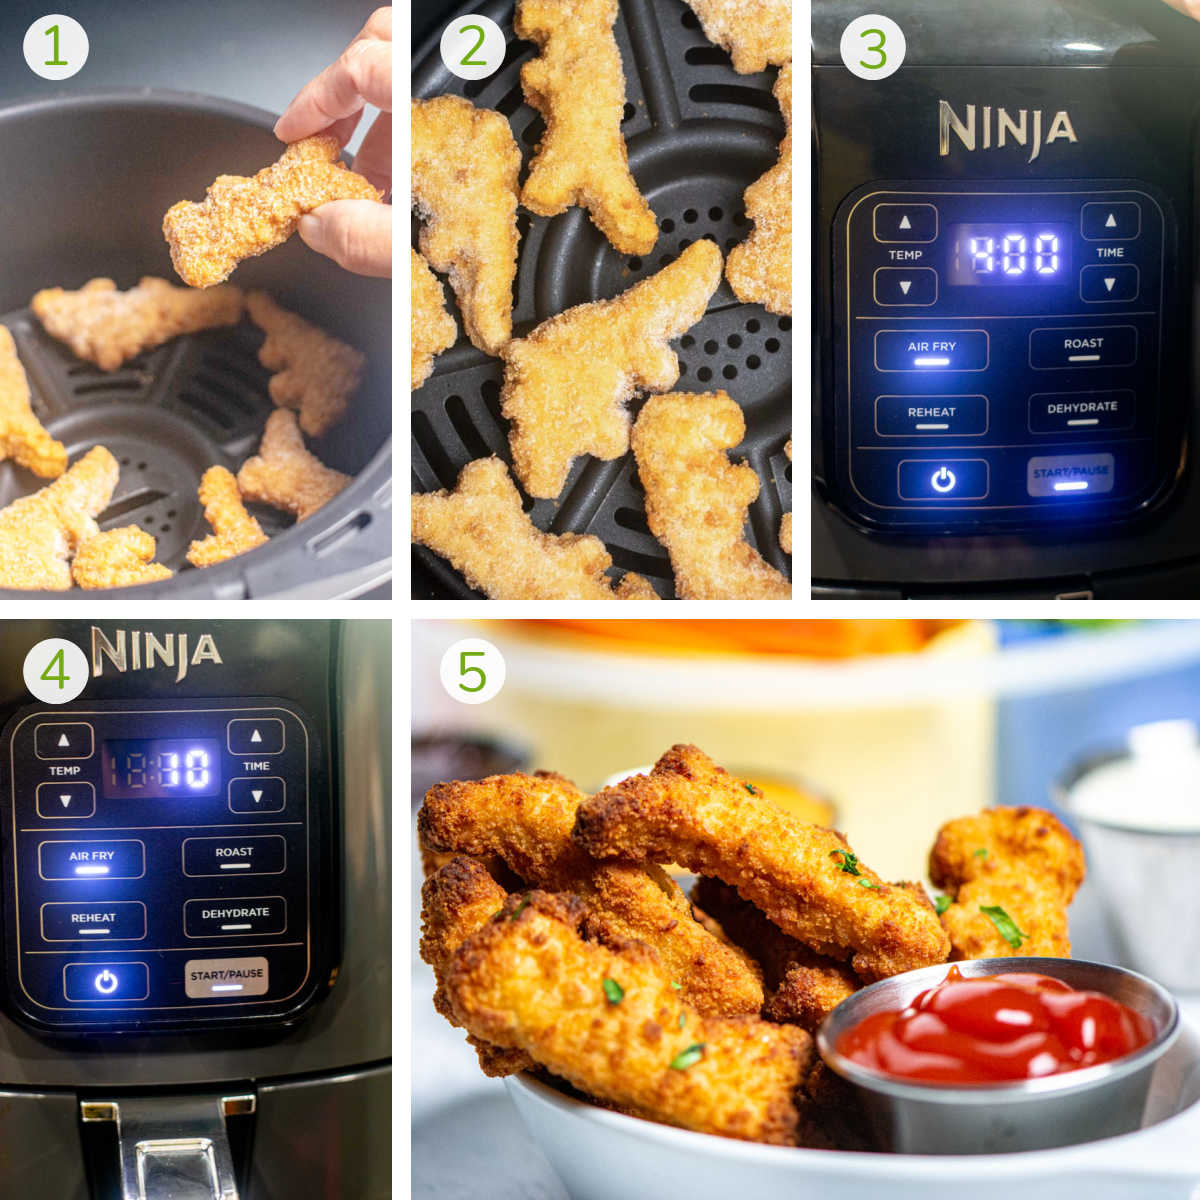 several process photos showing a woman adding the nuggets to the air fryer basket, turning it on and serving.